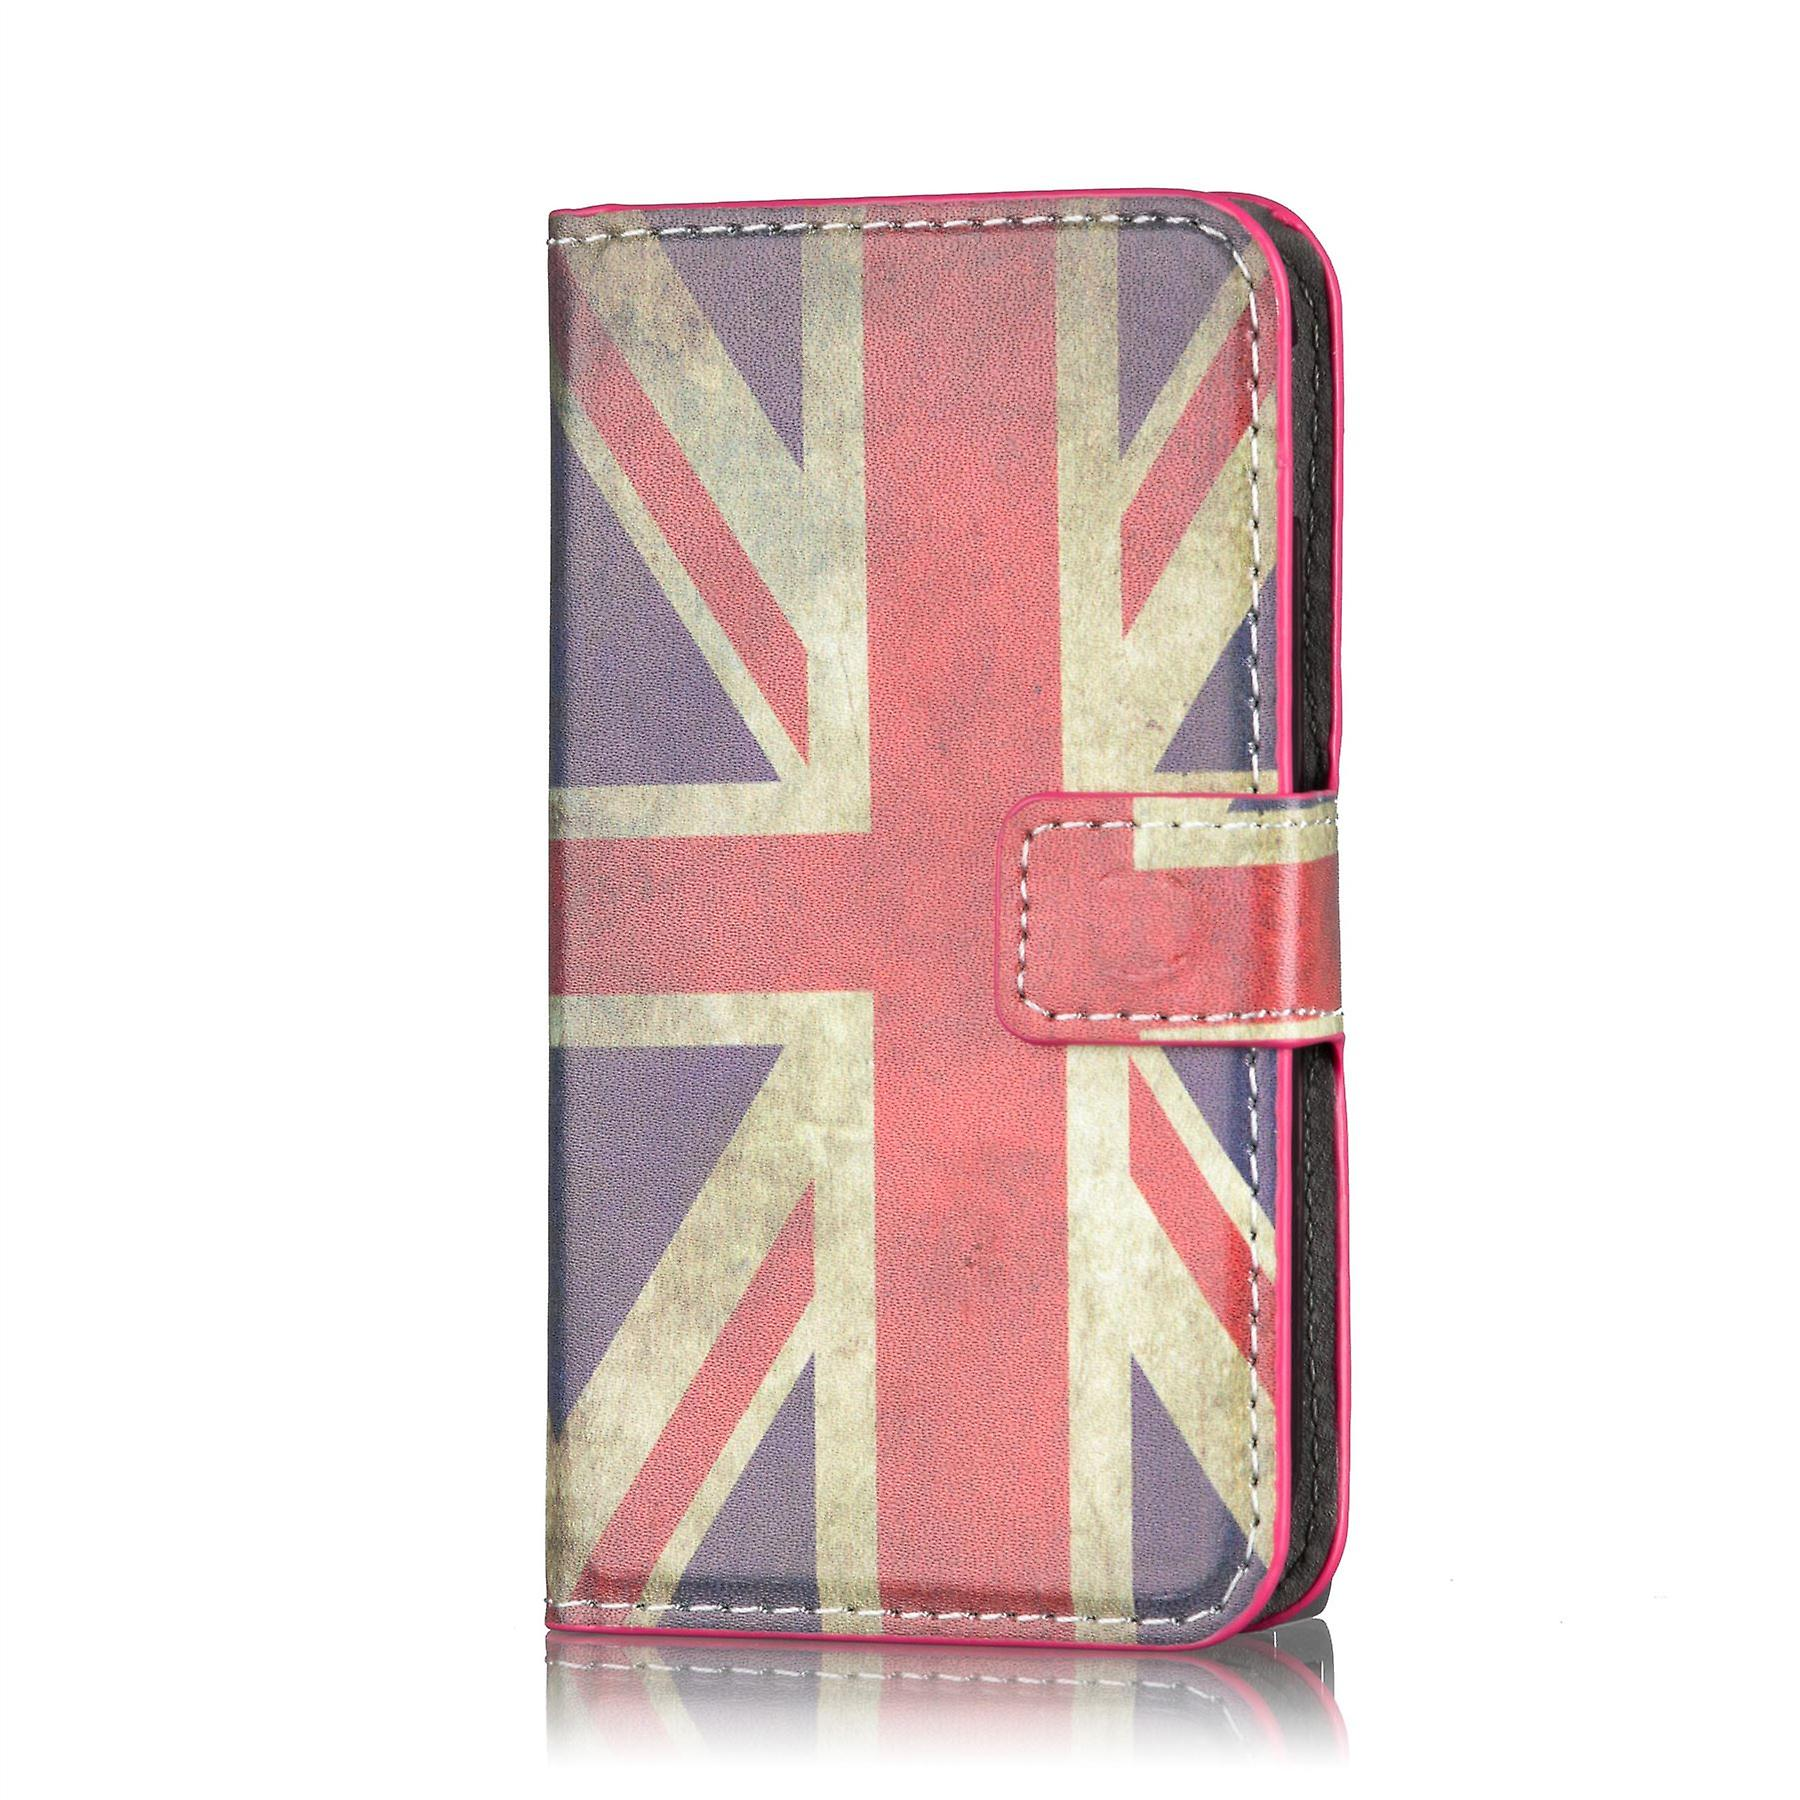 Design Book Leather Case Cover for Samsung Galaxy S3 i9300 + Screen Protector and Cleaning Cloth - Union Jack UK Flag